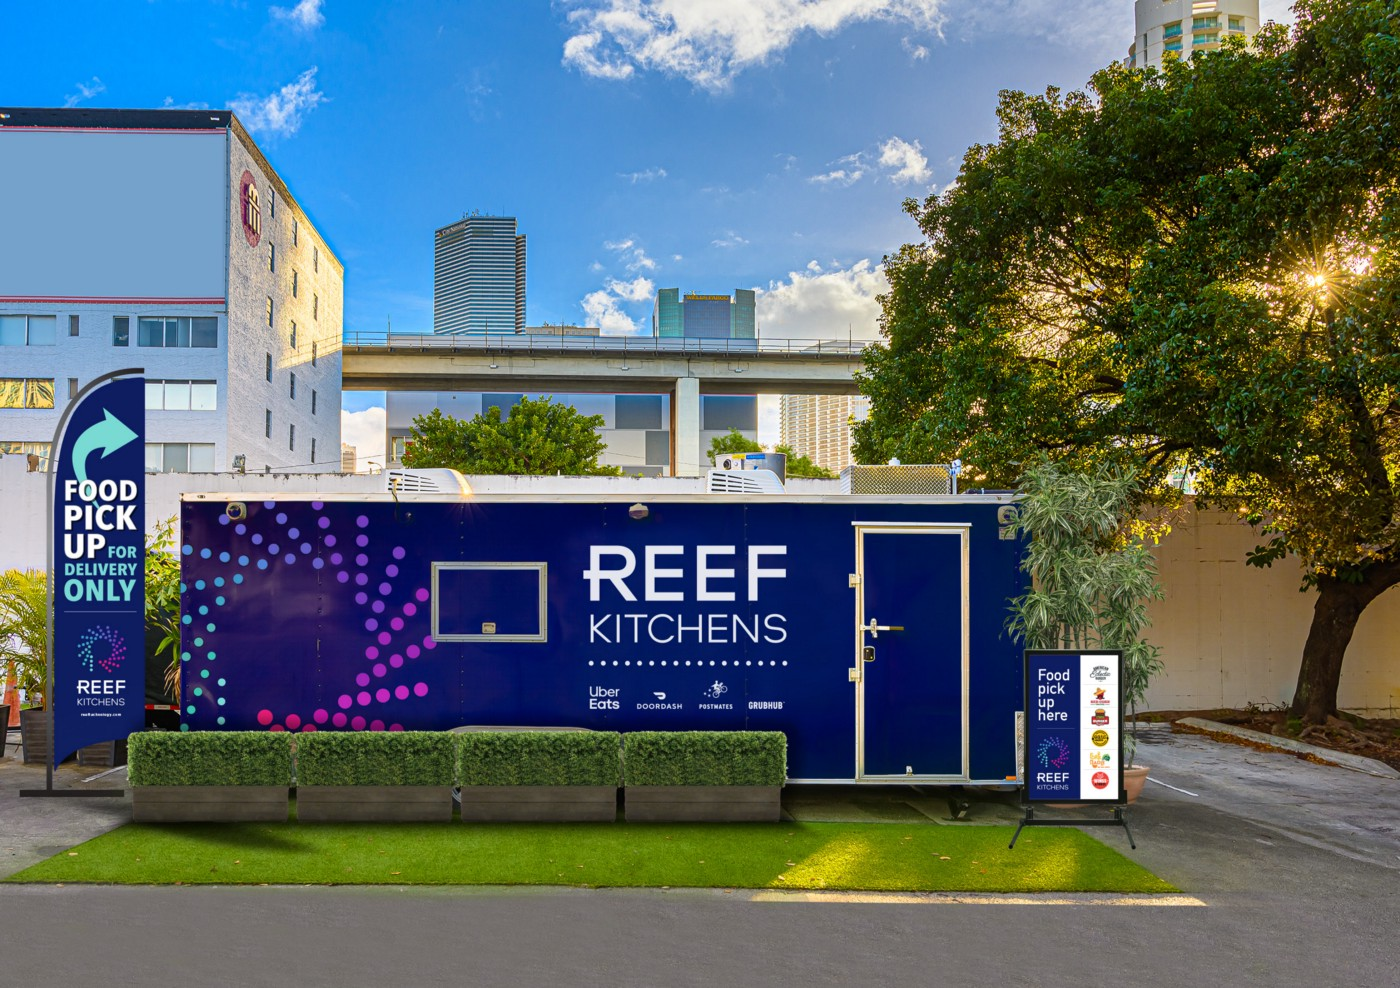 A pop-up REEF kitchen.